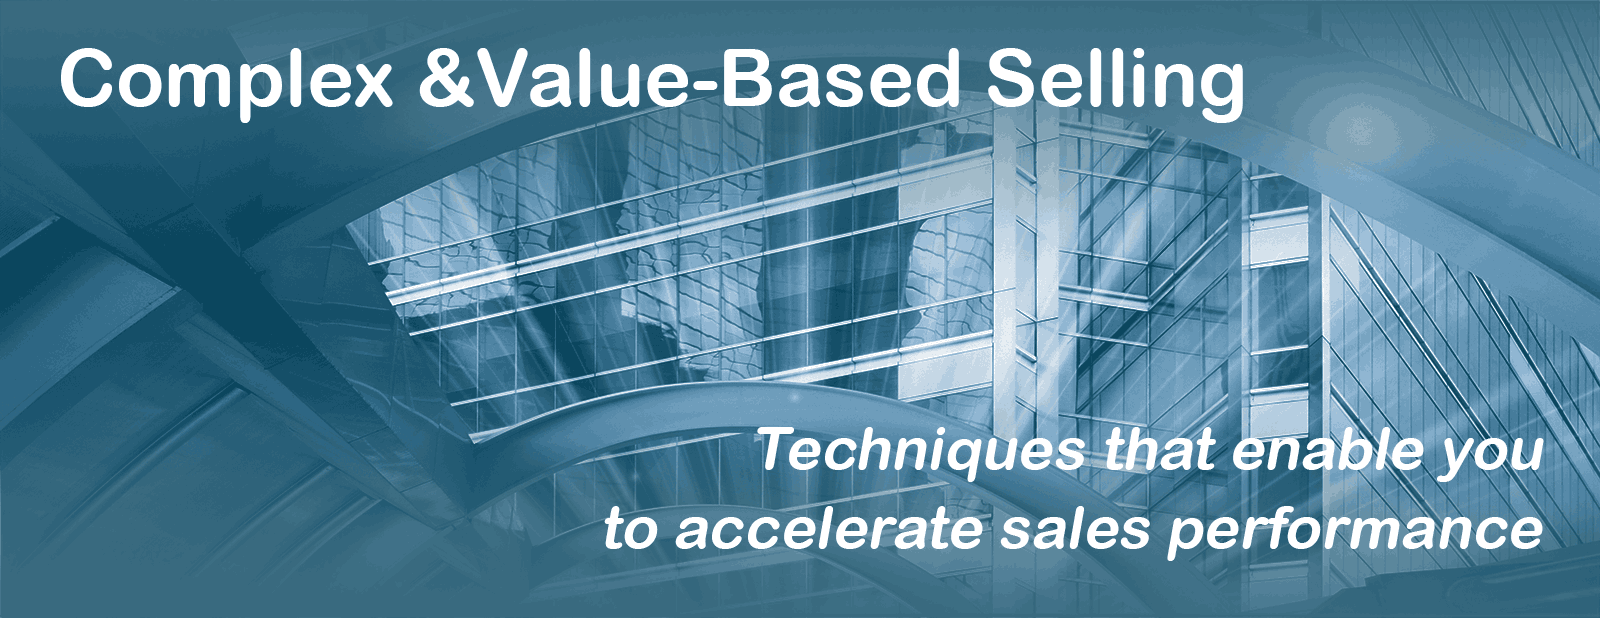 Complex & Value Based Selling - Techniques that enable you to accelerate sales performance